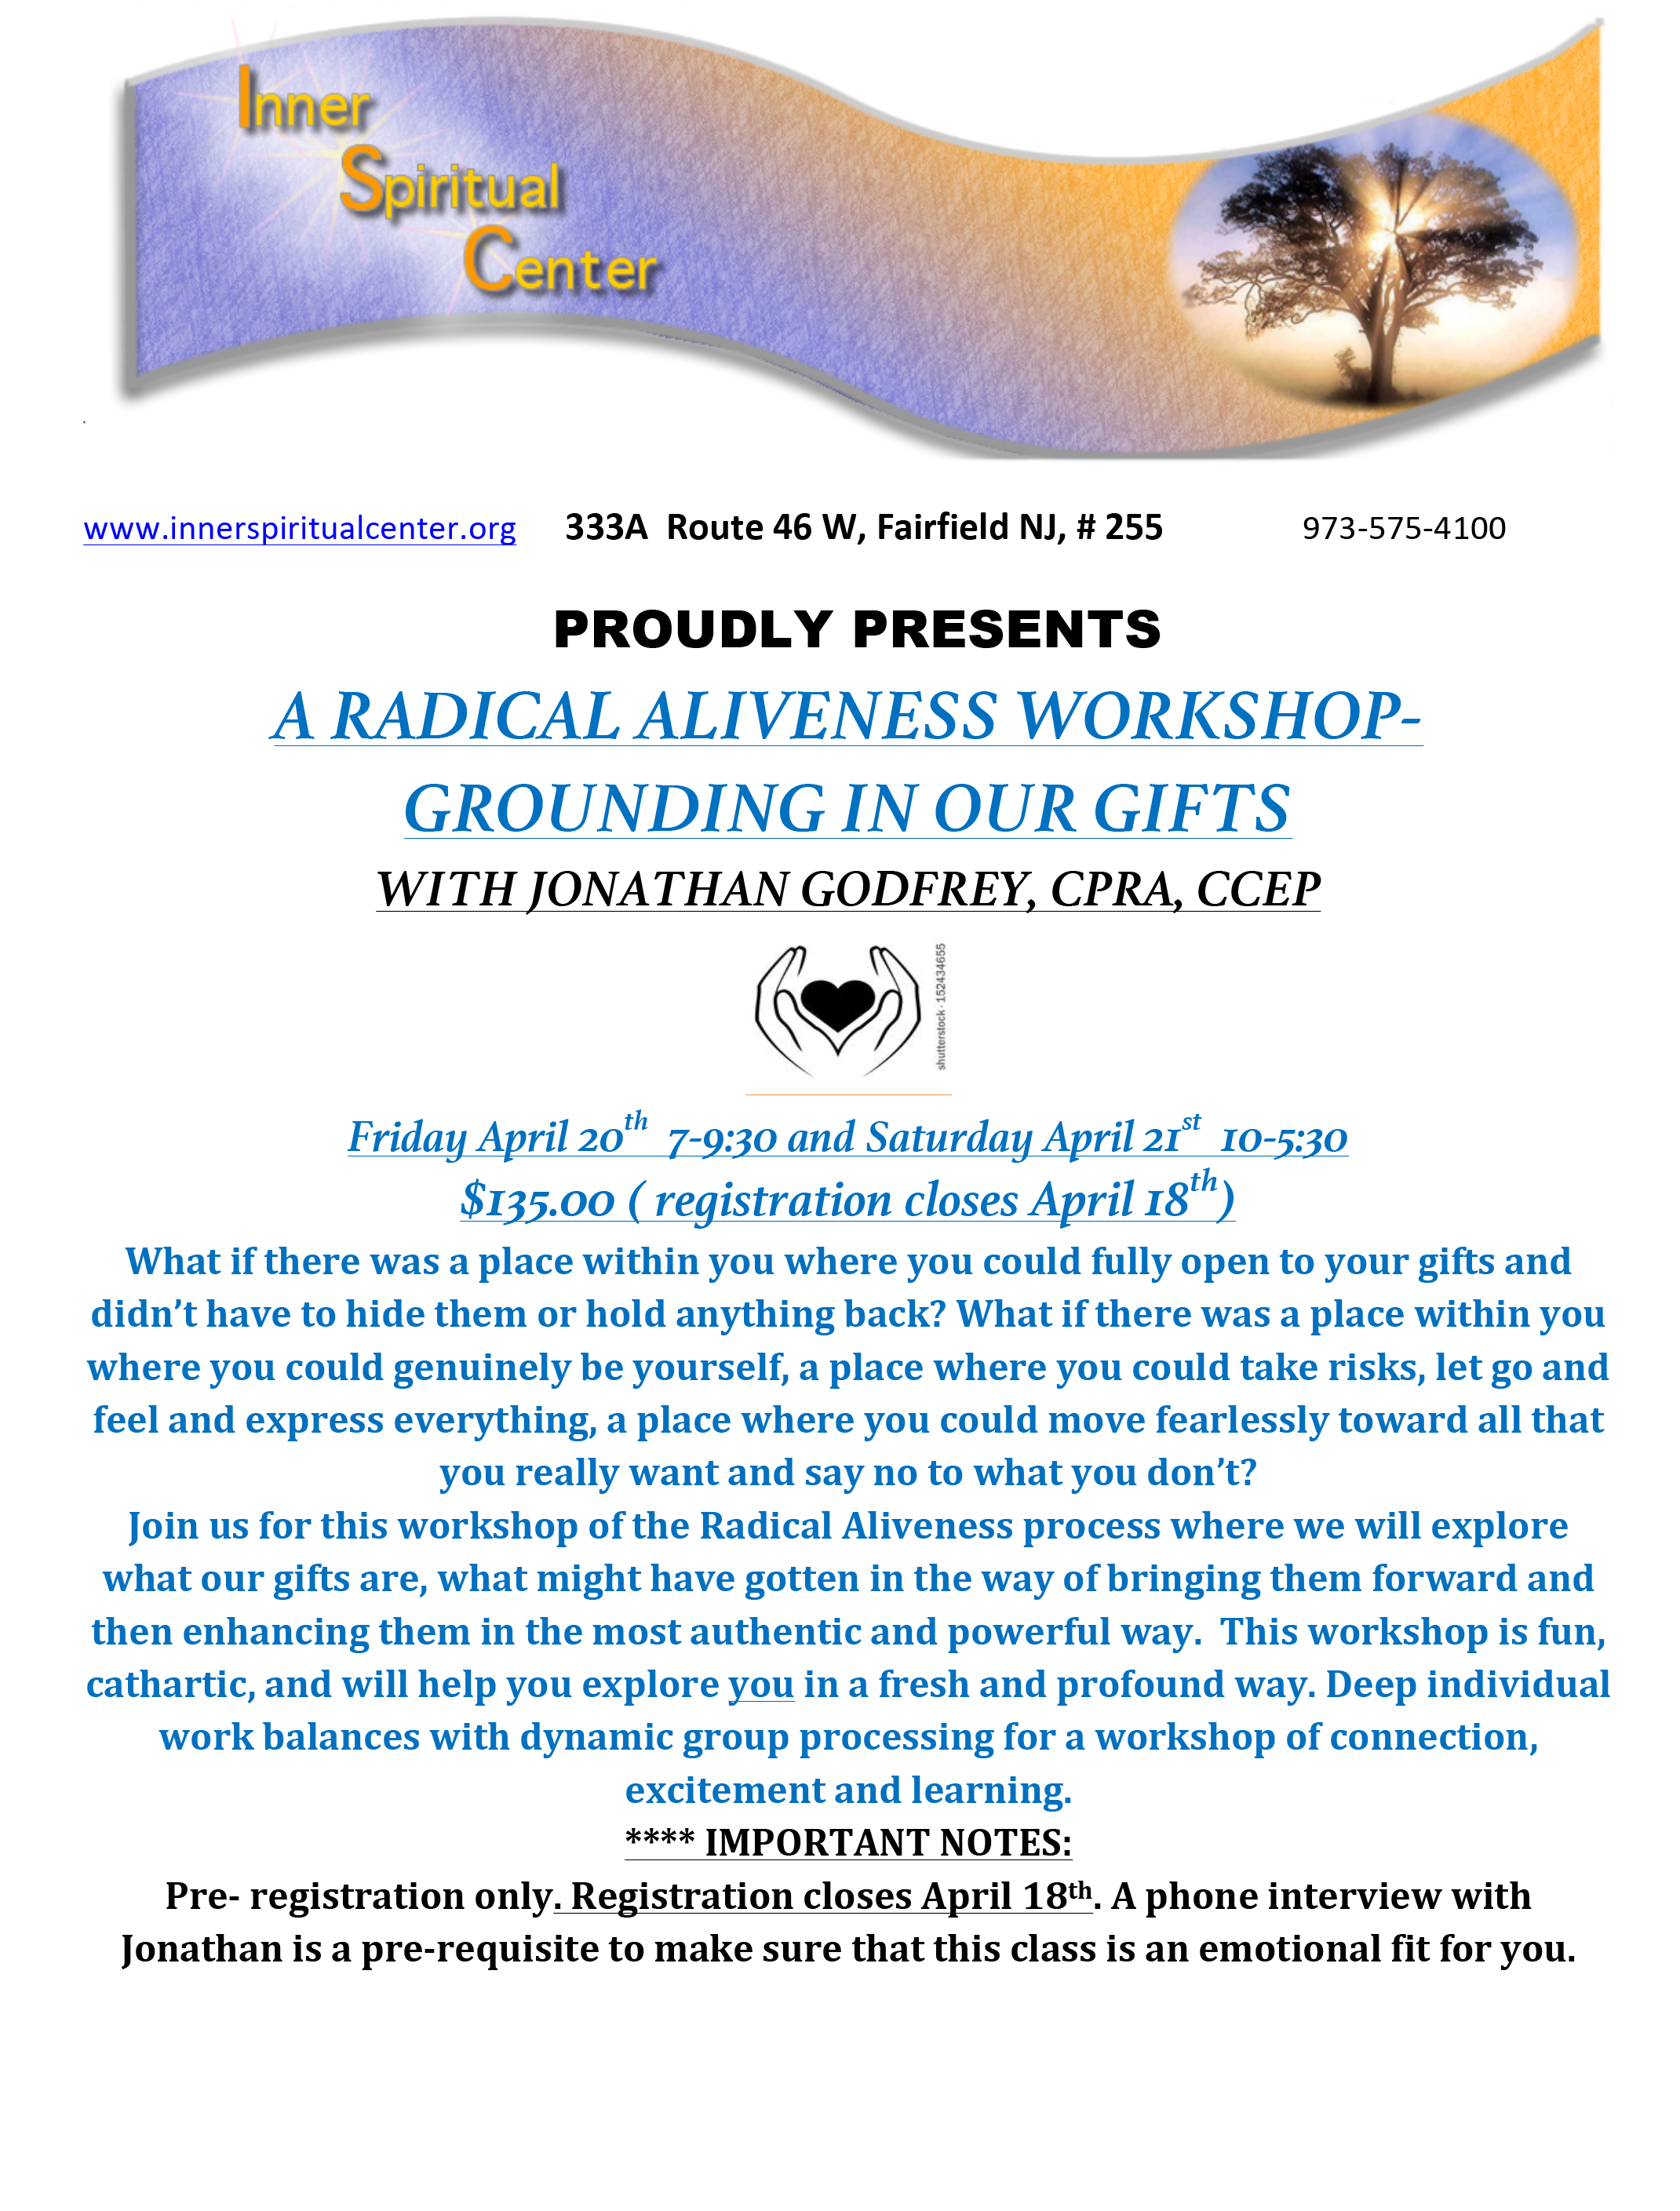 A Radical Workshop - Grounding in Our Gifts @ Inner Spiritual Center | Fairfield | New Jersey | United States